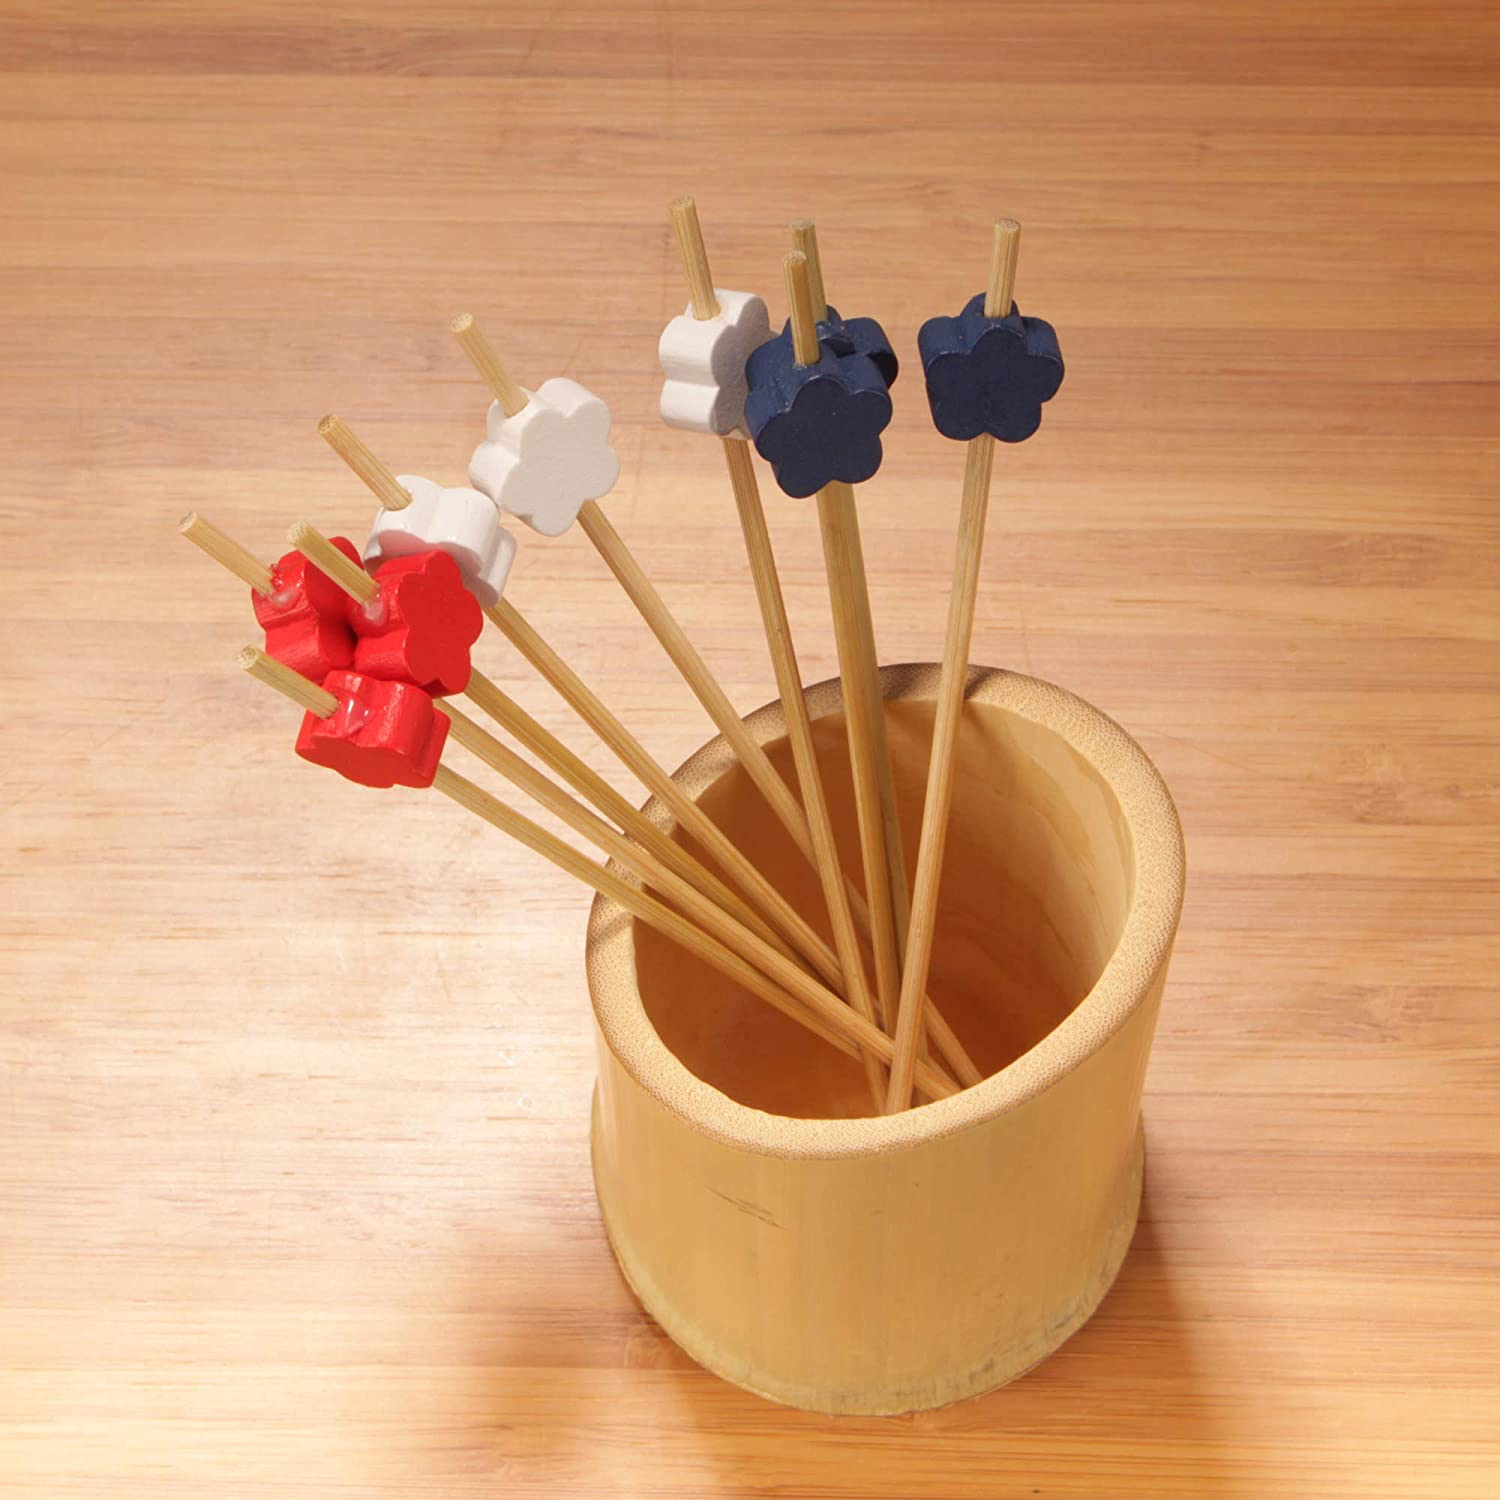 BambooMN Premium Decorative Flower End Bamboo Cocktail Sandwich Fruit Skewer Picks 4.7 Red - 100 Pcs 12cm White and Blue